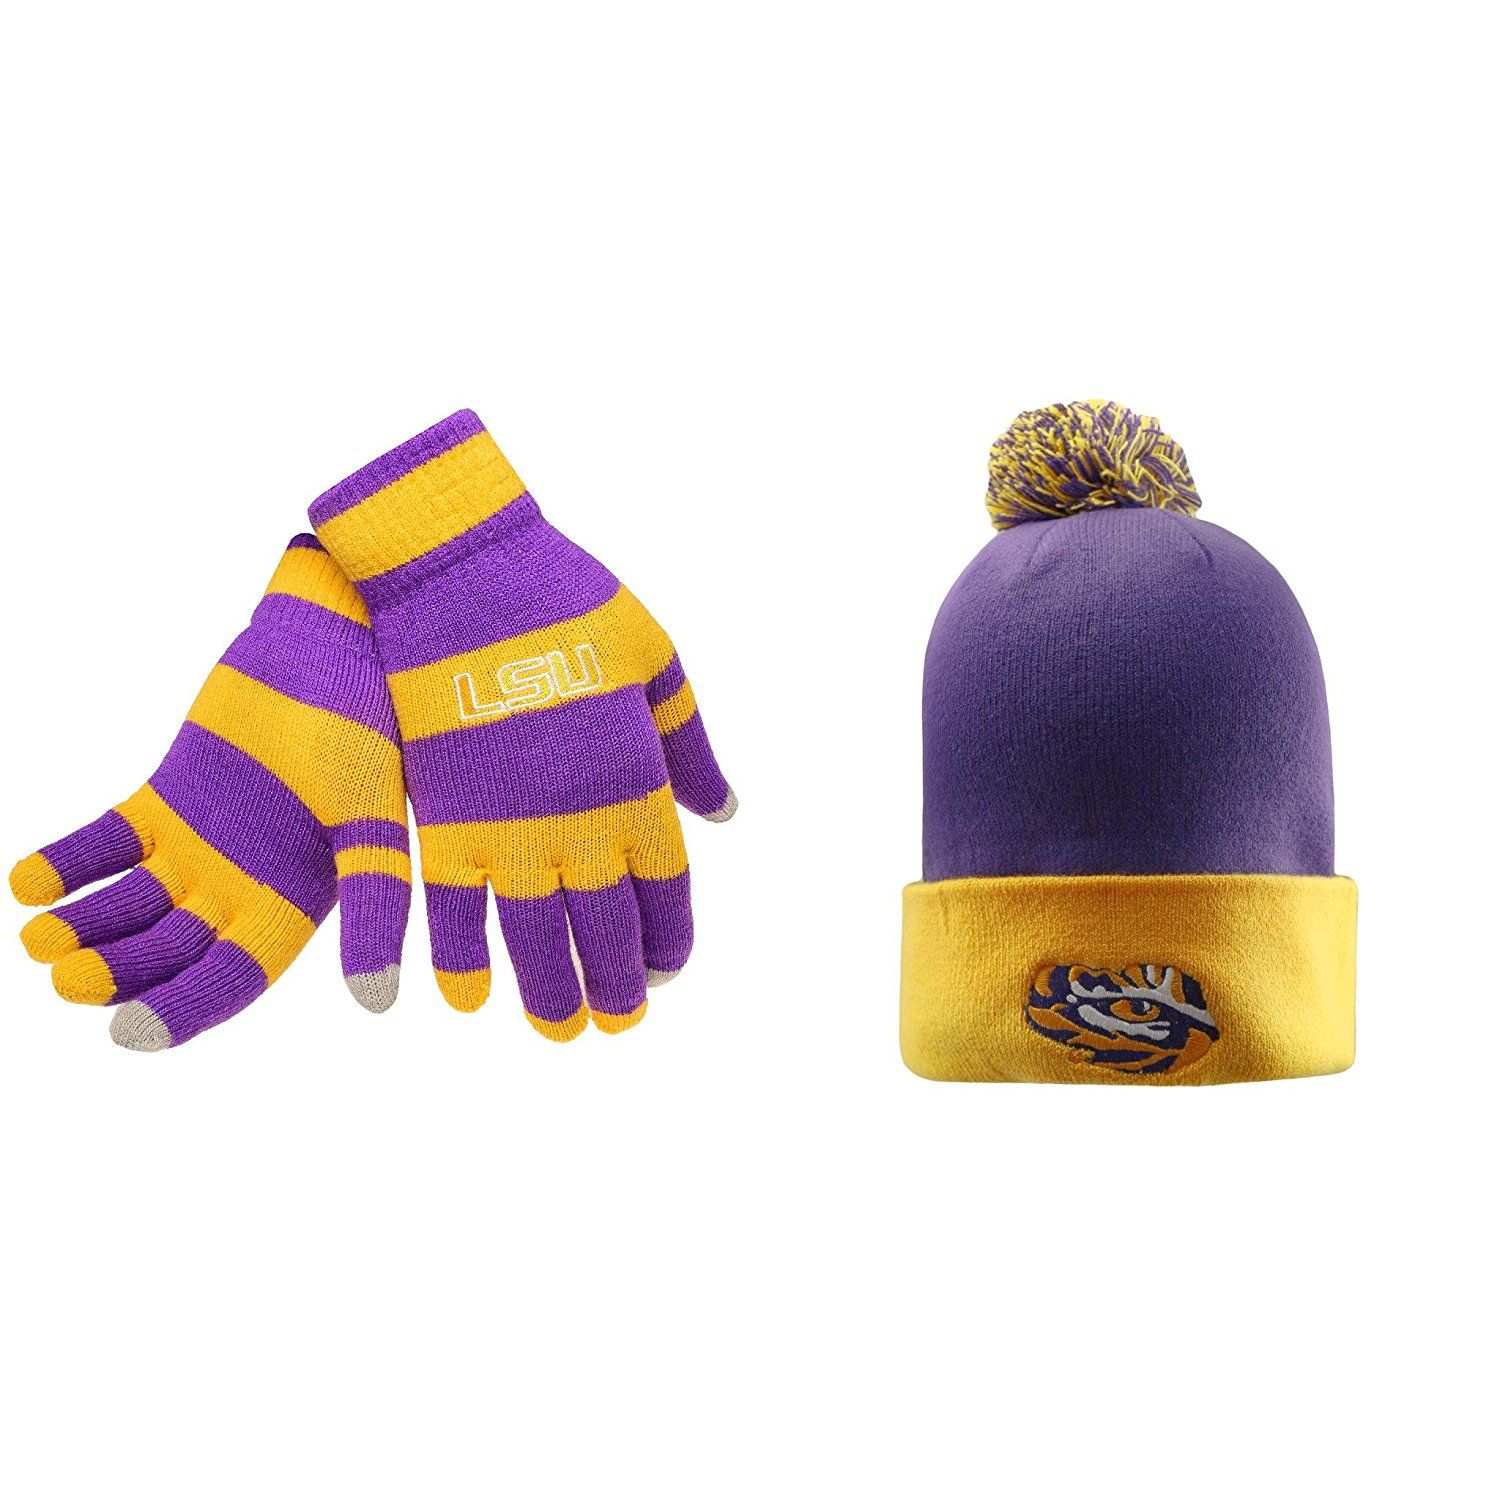 dcb643ccfbe Get Quotations · NCAA LSU Tigers Glove Stripe Knit And Pom Beanie Hat 2  Pack Bundle